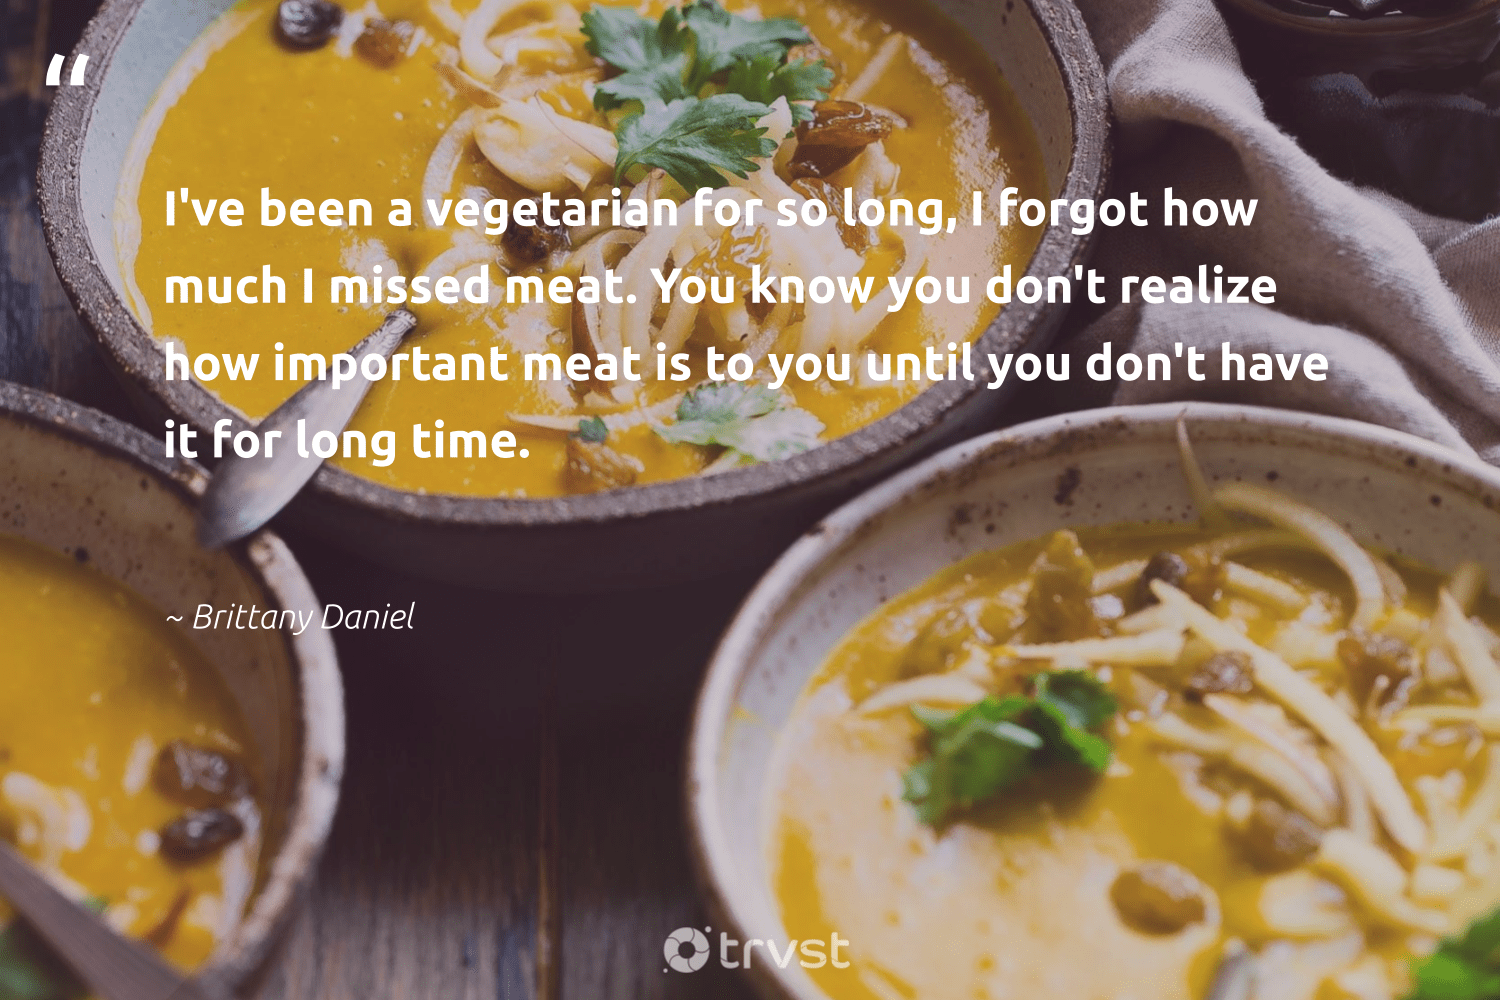 """""""I've been a vegetarian for so long, I forgot how much I missed meat. You know you don't realize how important meat is to you until you don't have it for long time.""""  - Brittany Daniel #trvst #quotes #vegan #vegetarian #gogreen #green #socialchange #veganlife #greenliving #fashion #collectiveaction #veggie"""